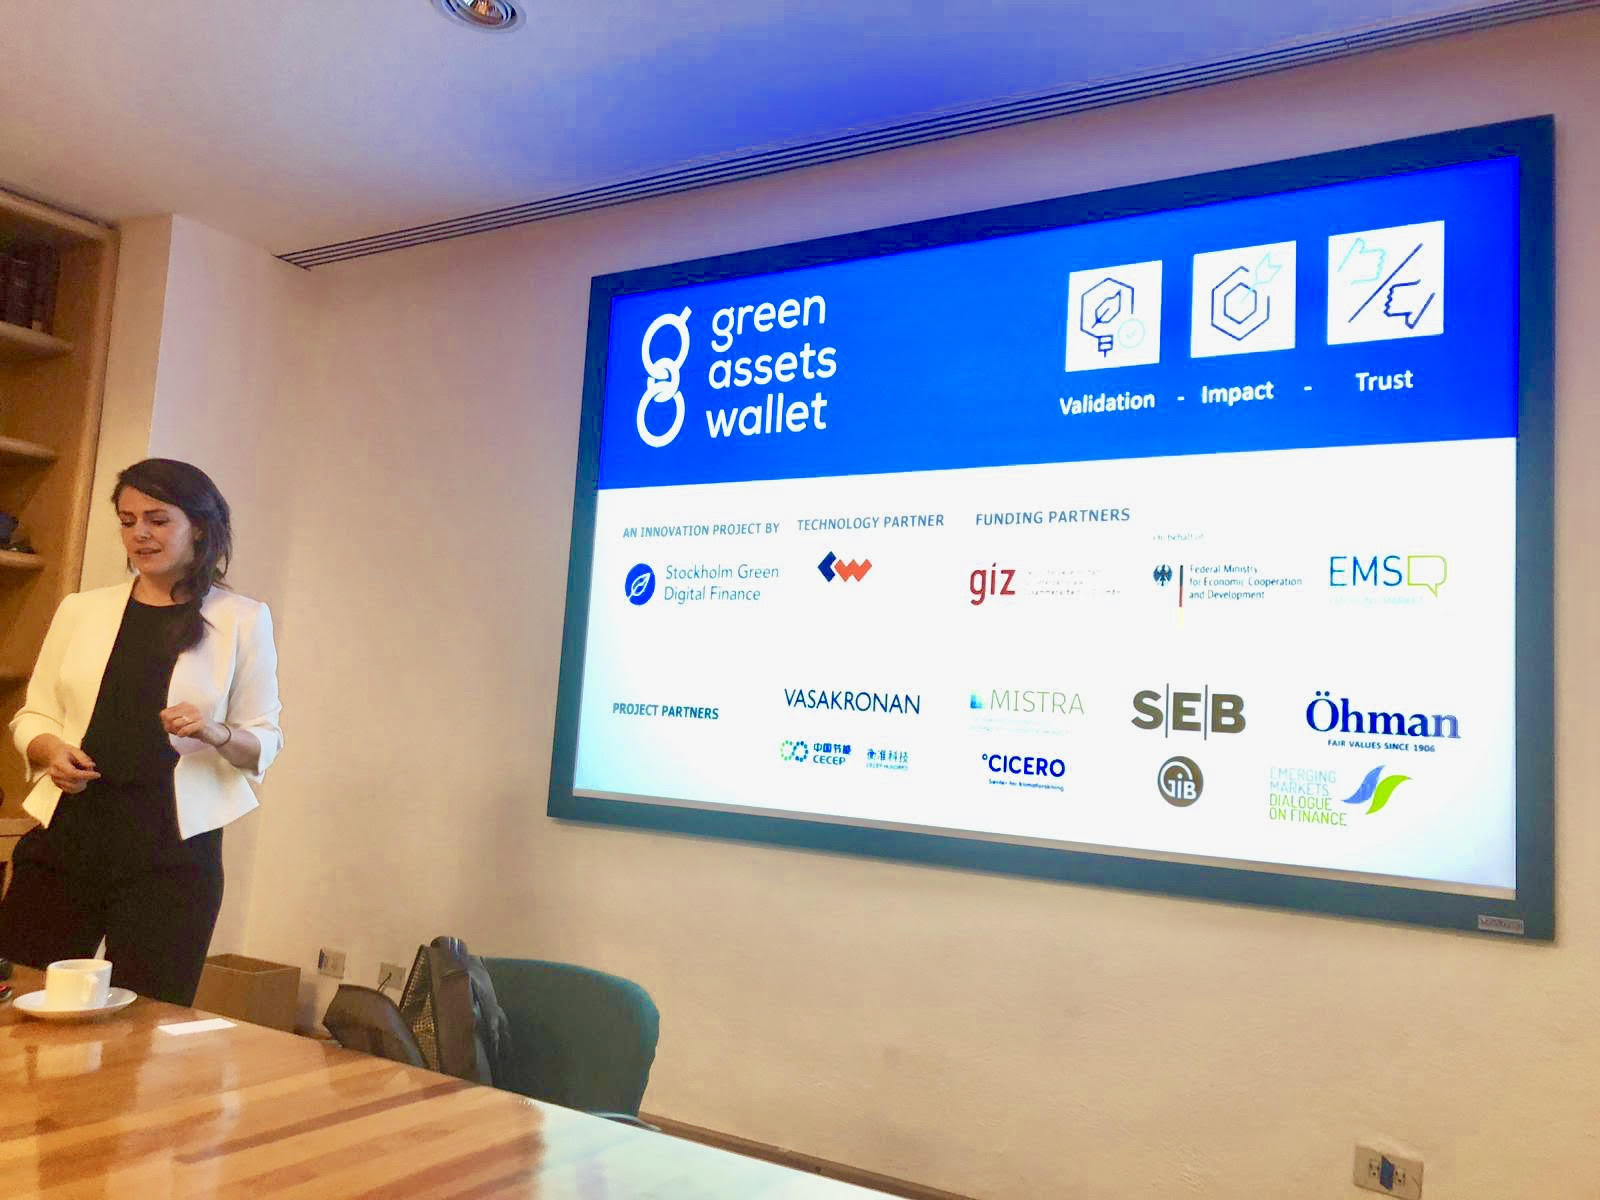 News — Stockholm Green Digital Finance